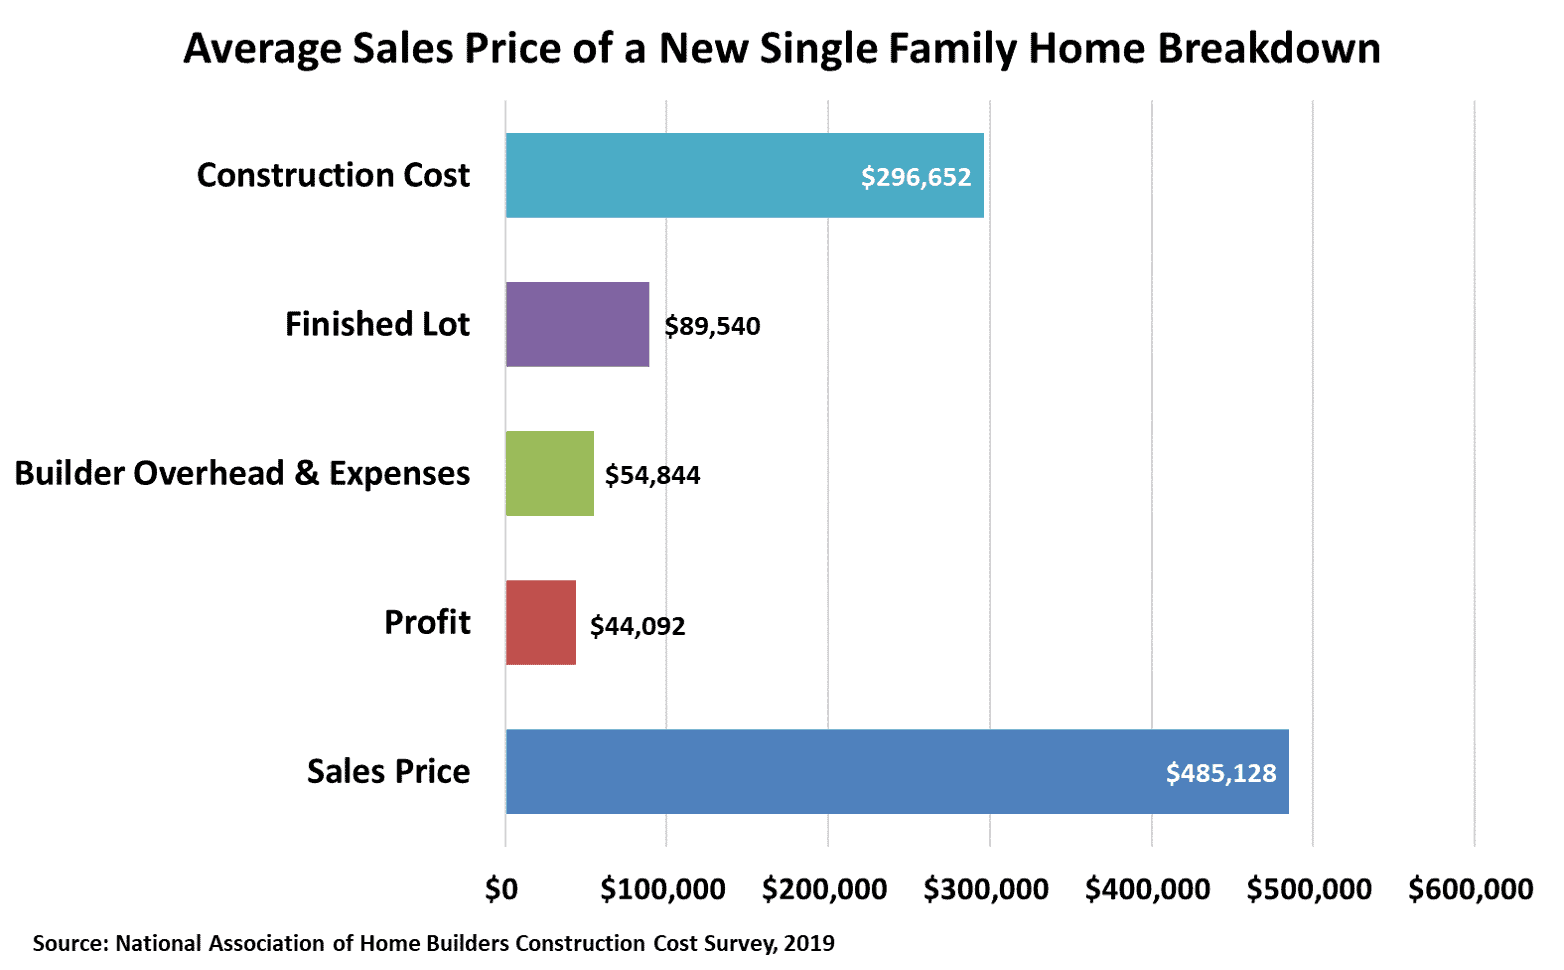 Graph displaying breakdown of the cost and expense components making up the average sales price of a new single family home in the US